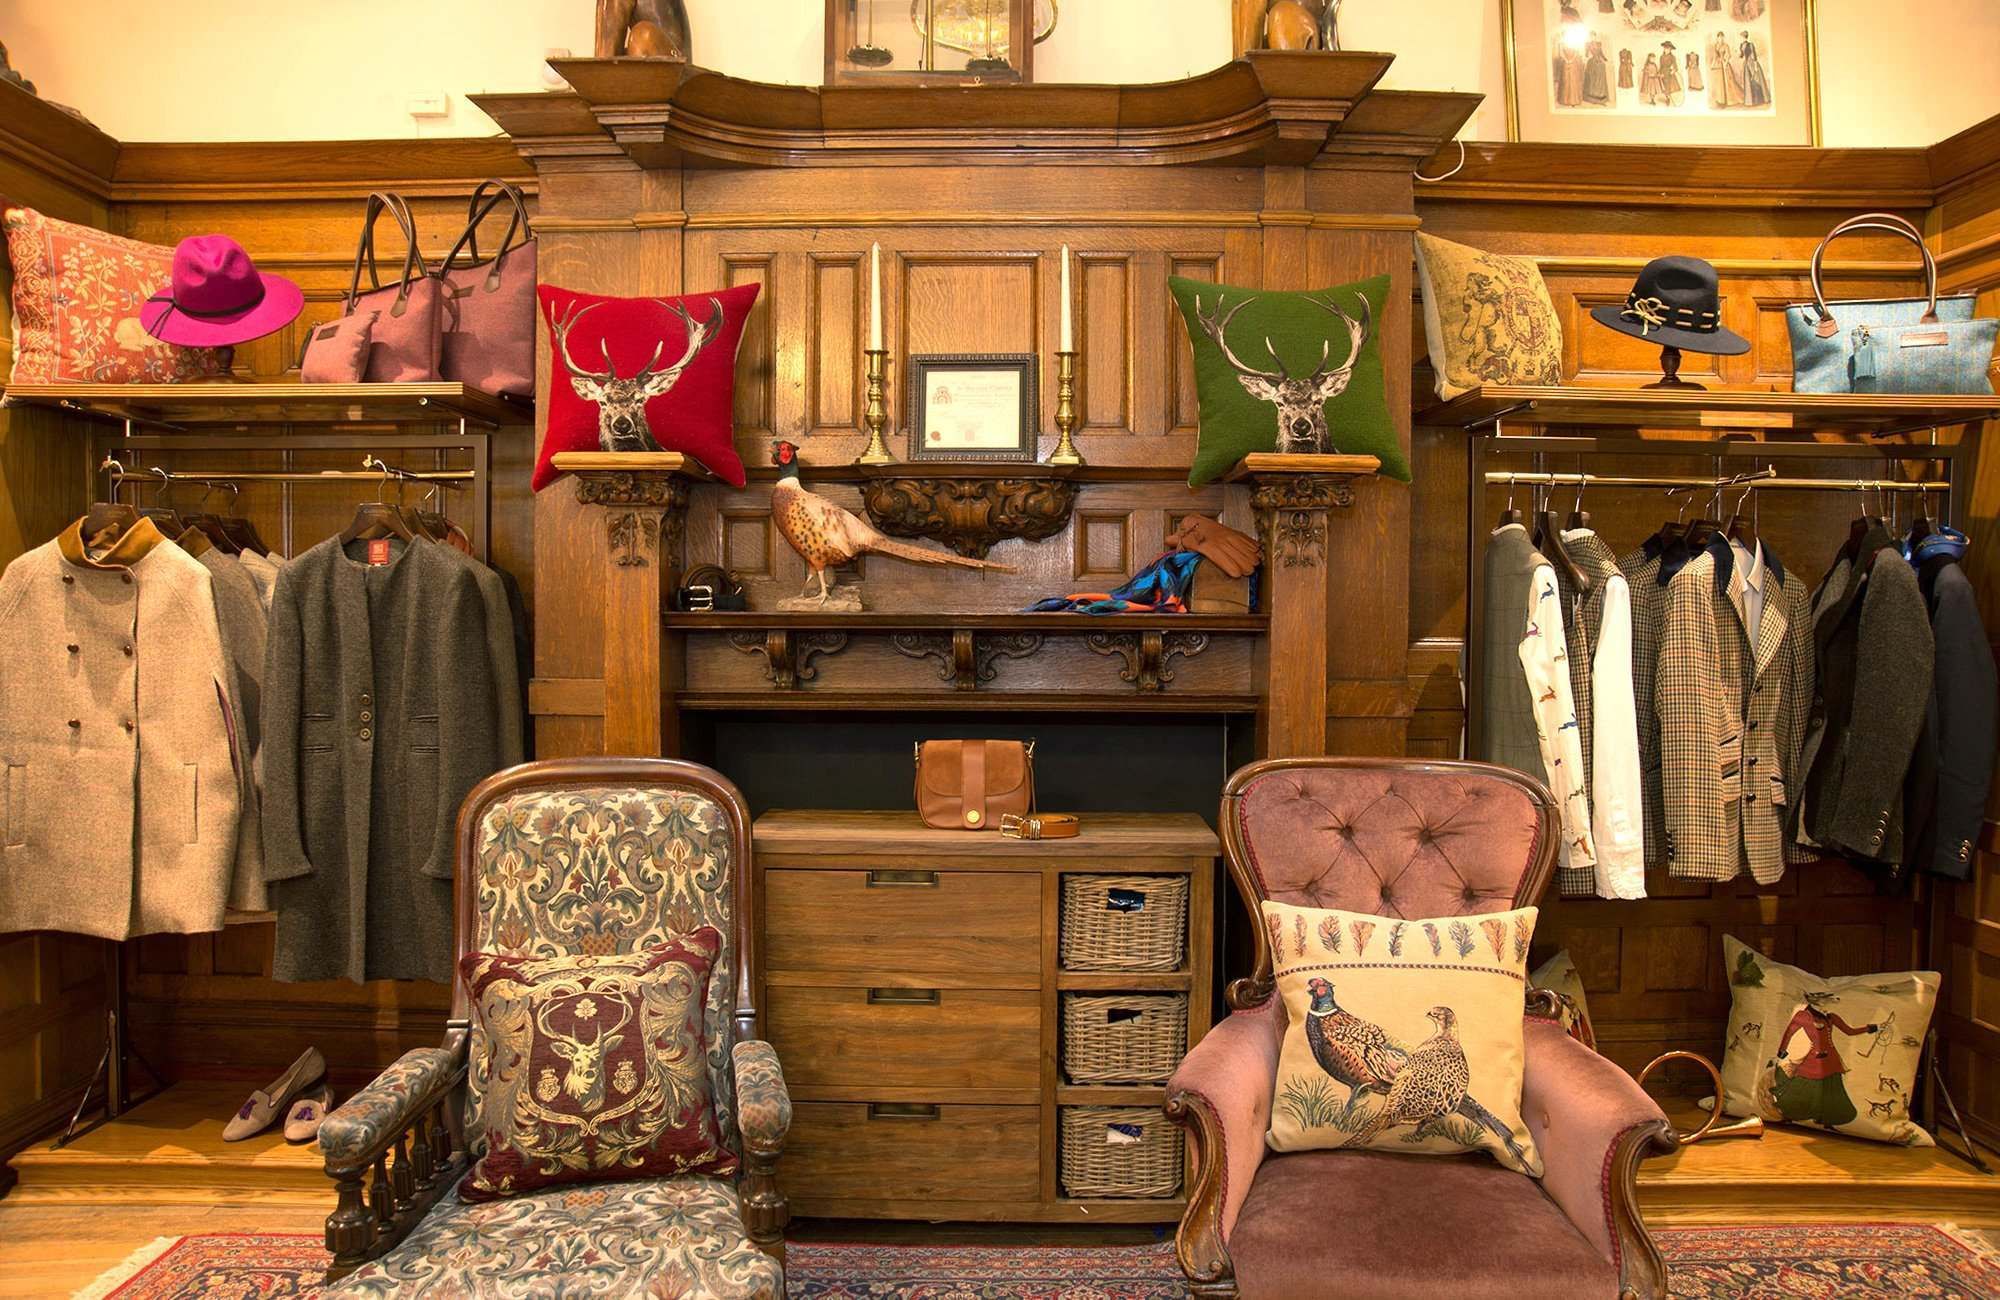 The original fireplace in the ladies' room surrounded by the collection